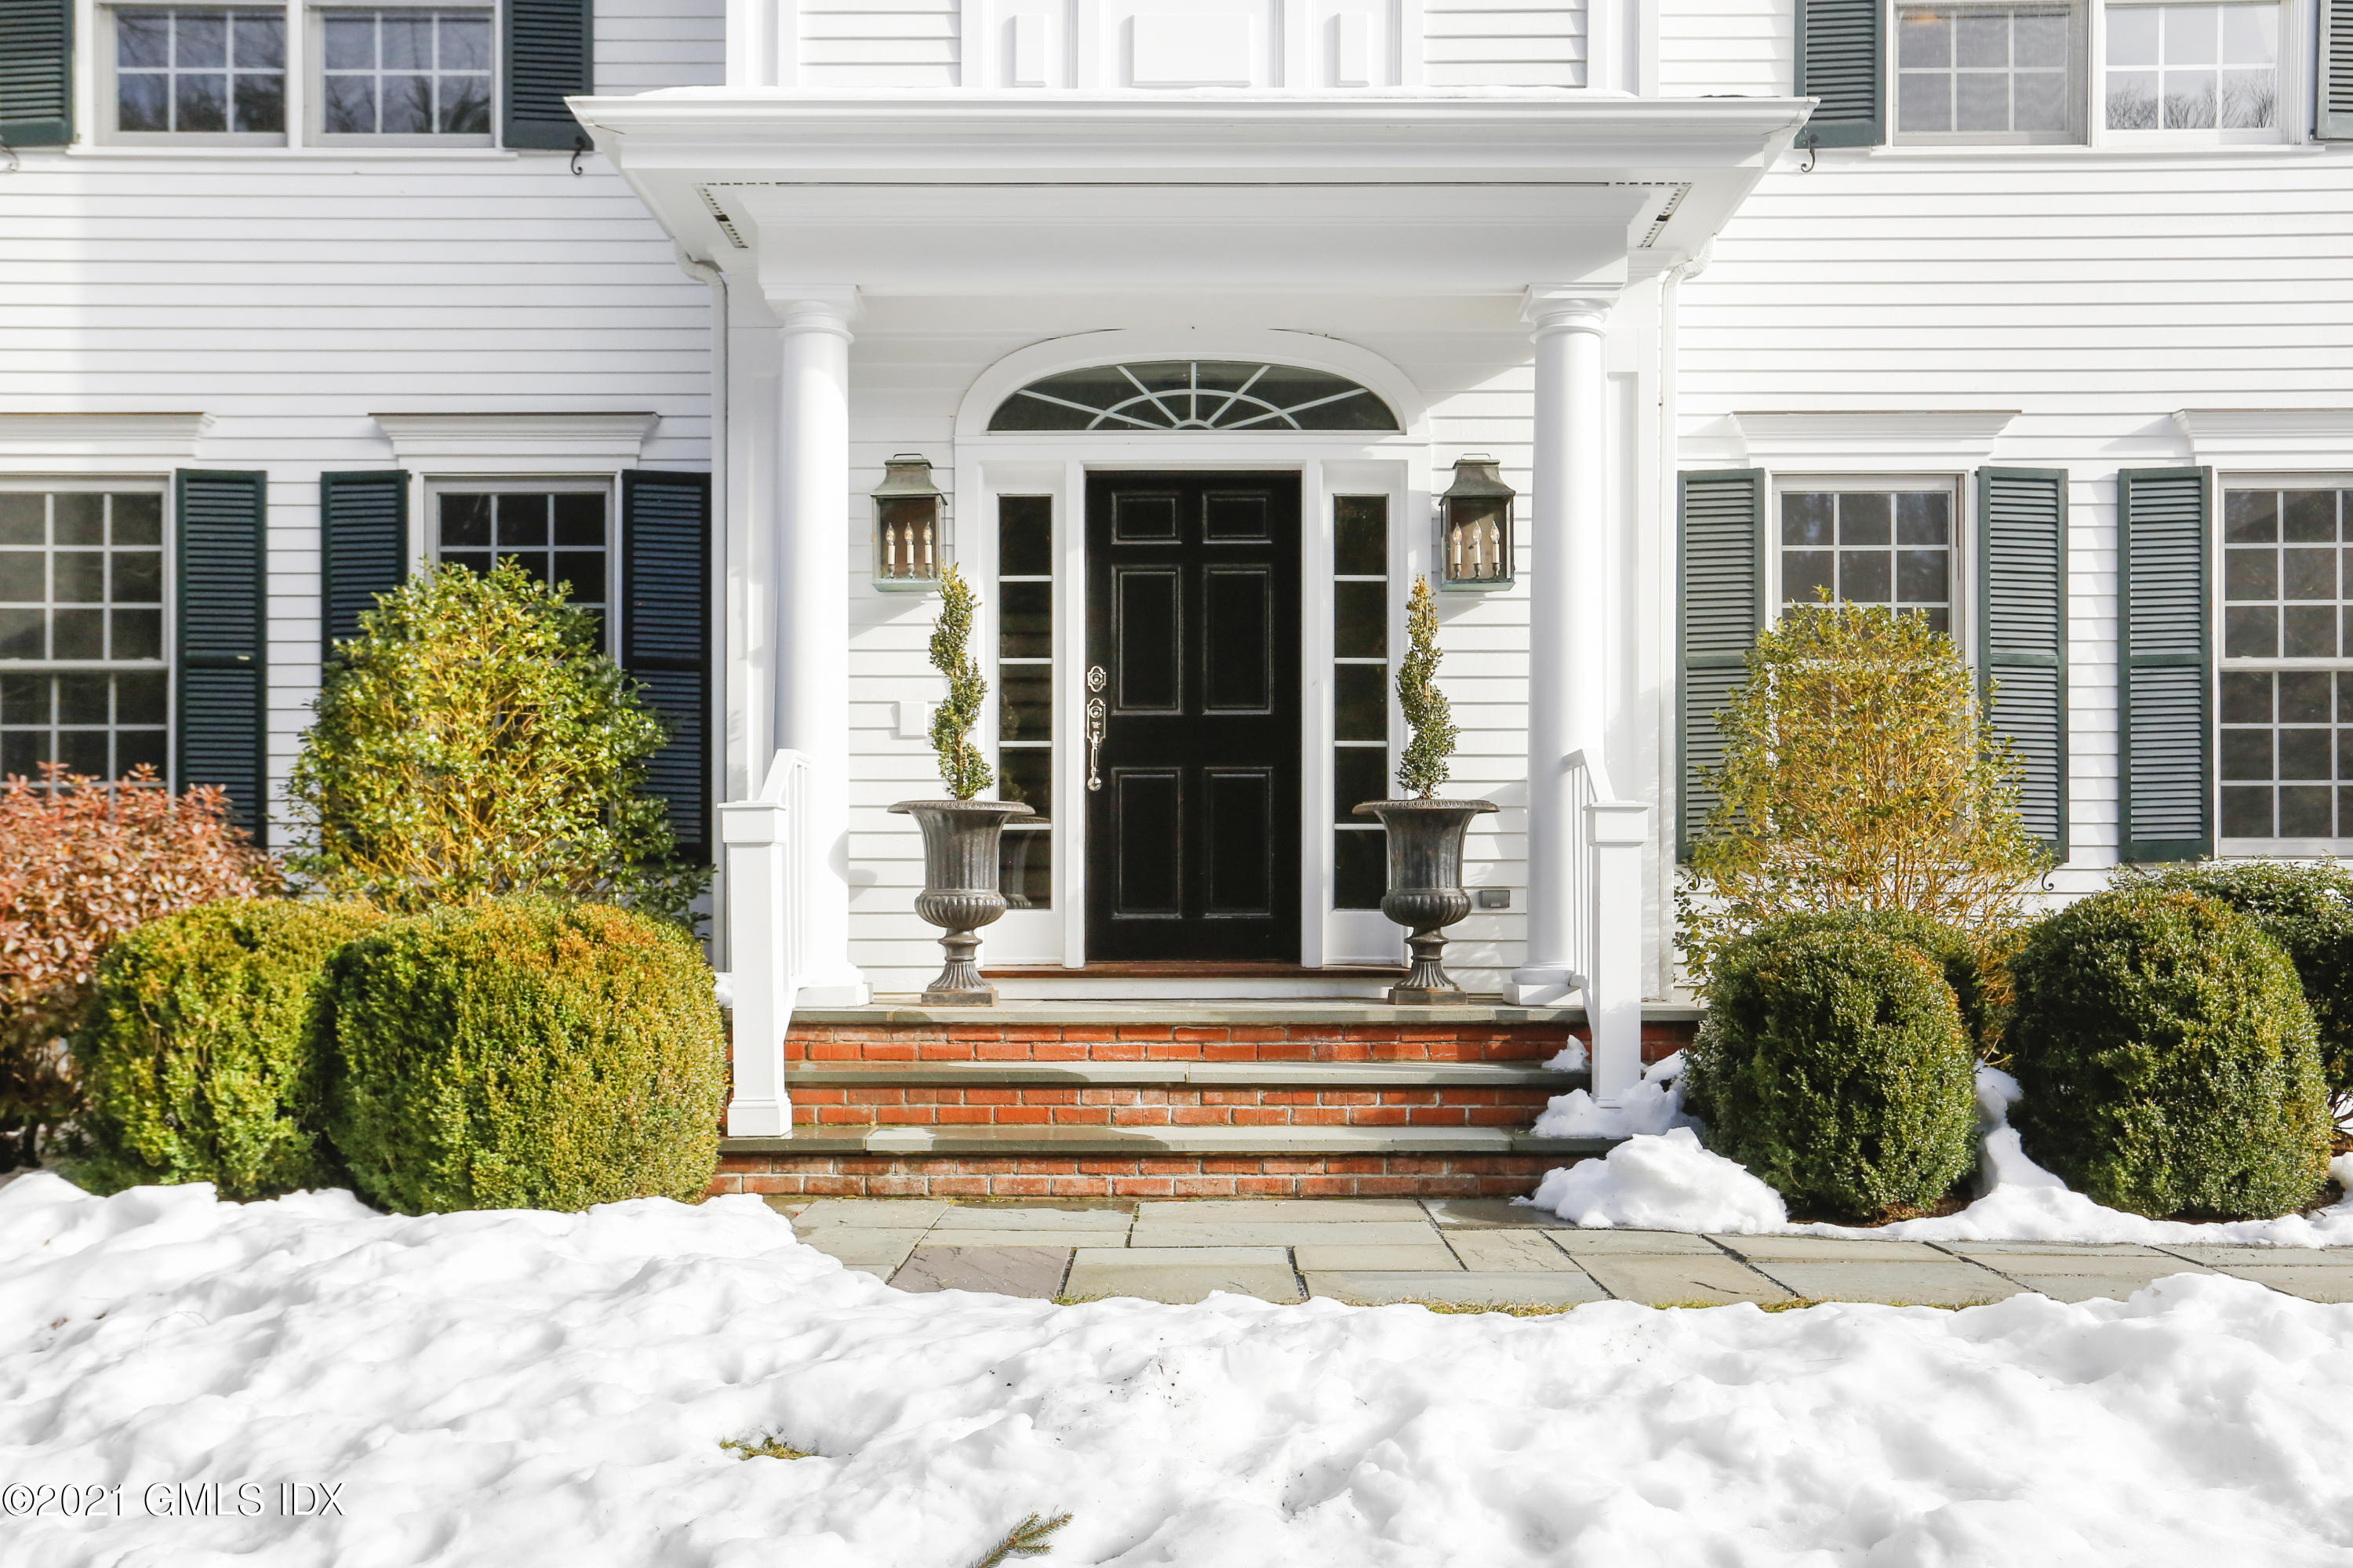 123 Valley Drive, Greenwich, Connecticut 06831, 5 Bedrooms Bedrooms, ,5 BathroomsBathrooms,Single family,For Rent,Valley,112244